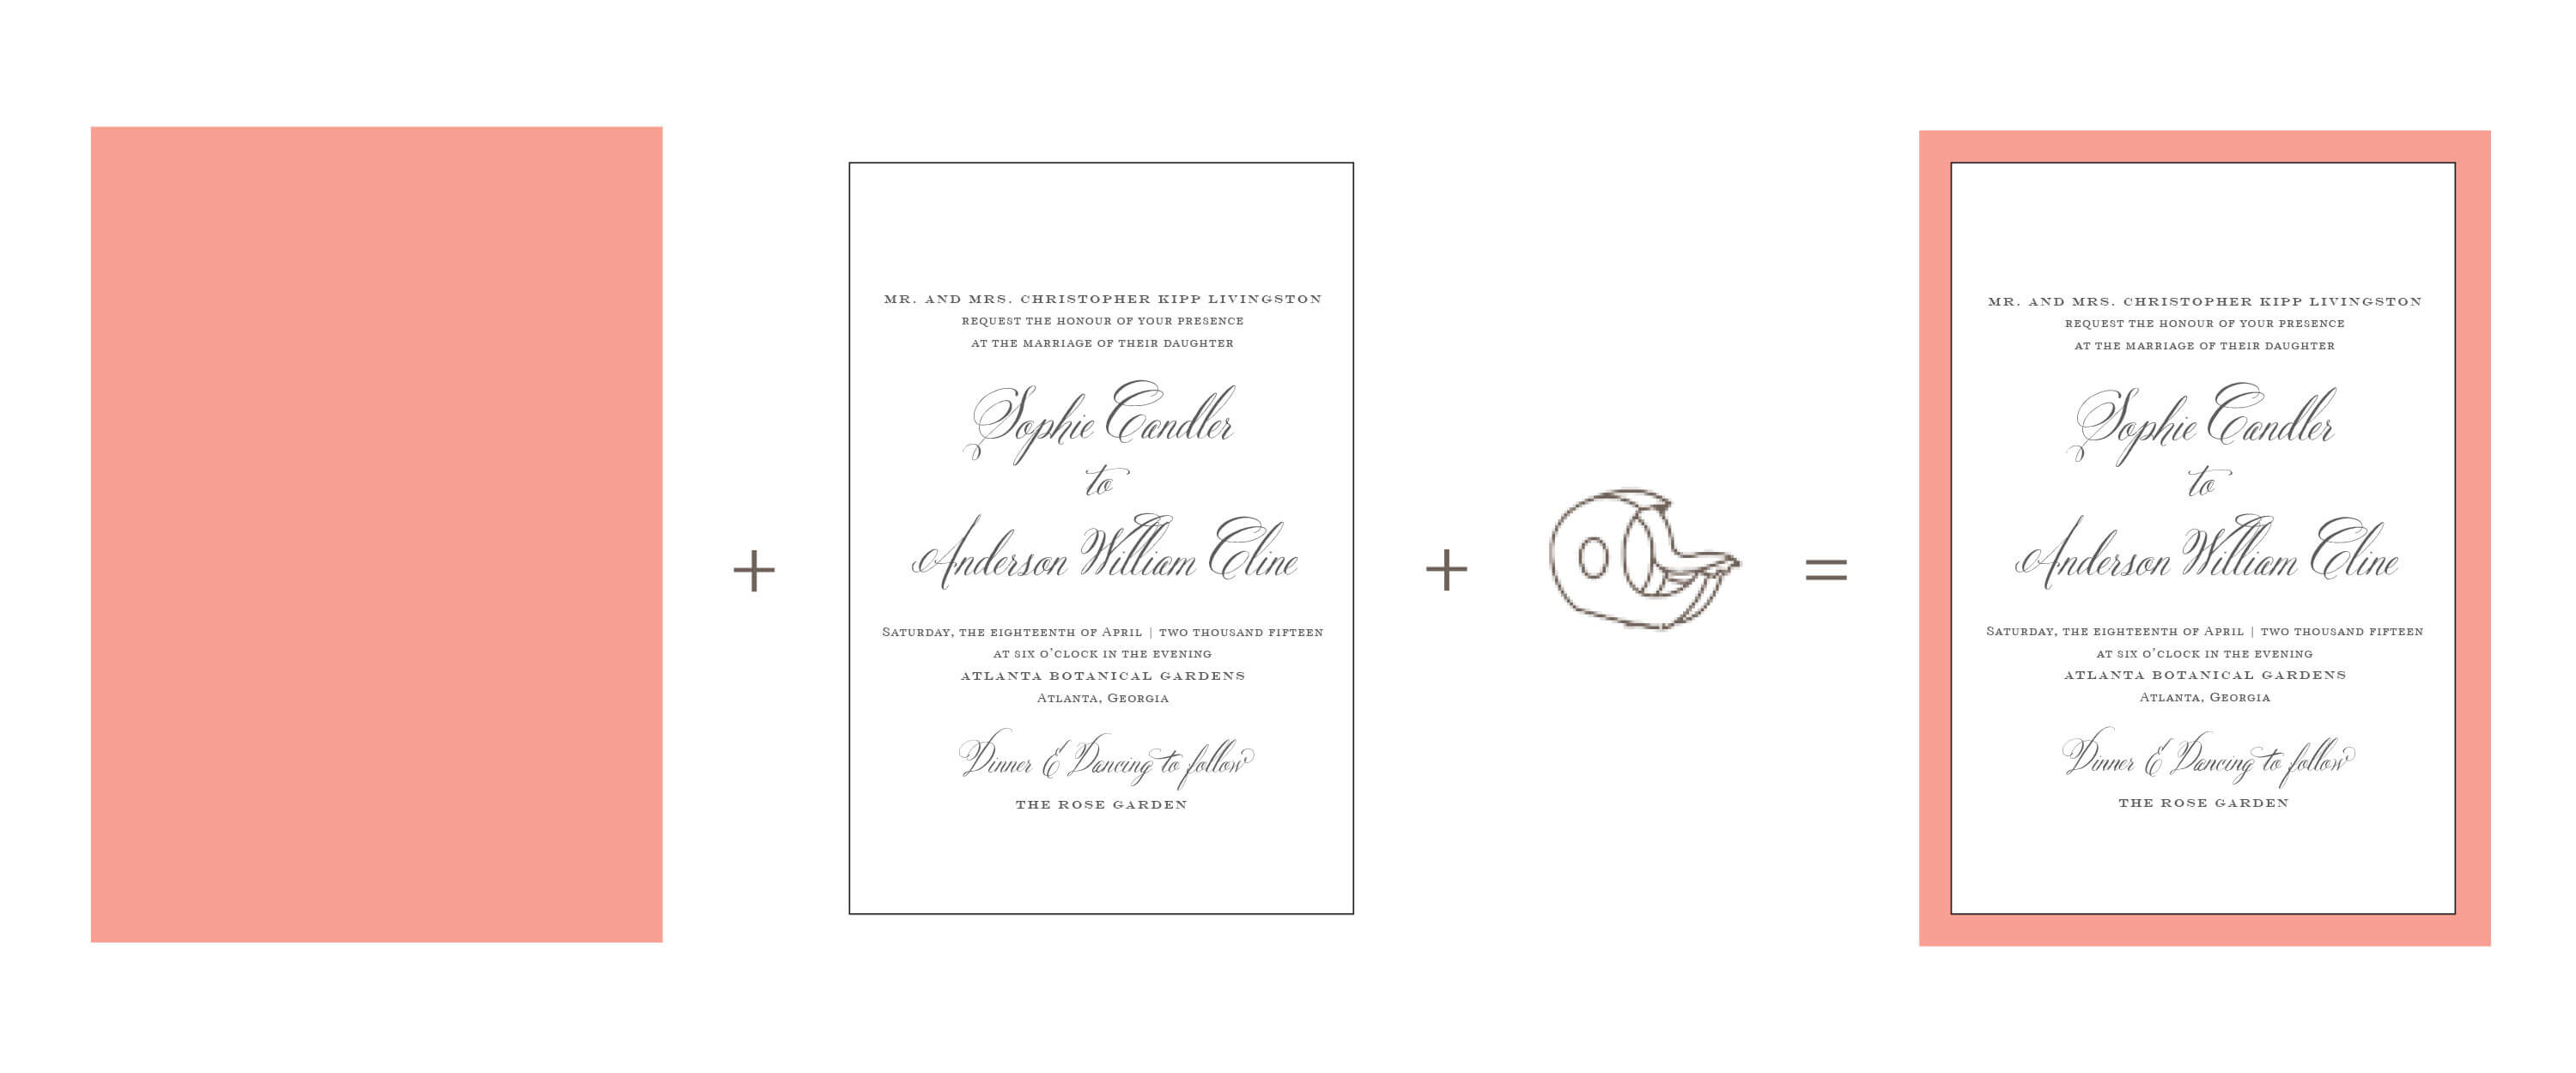 We Will Also Provide You With A Mini Adhesive Tape Gun And Instructions On How To Matte Your Invitations: Daisy Do It Yourself Wedding Invitations At Websimilar.org